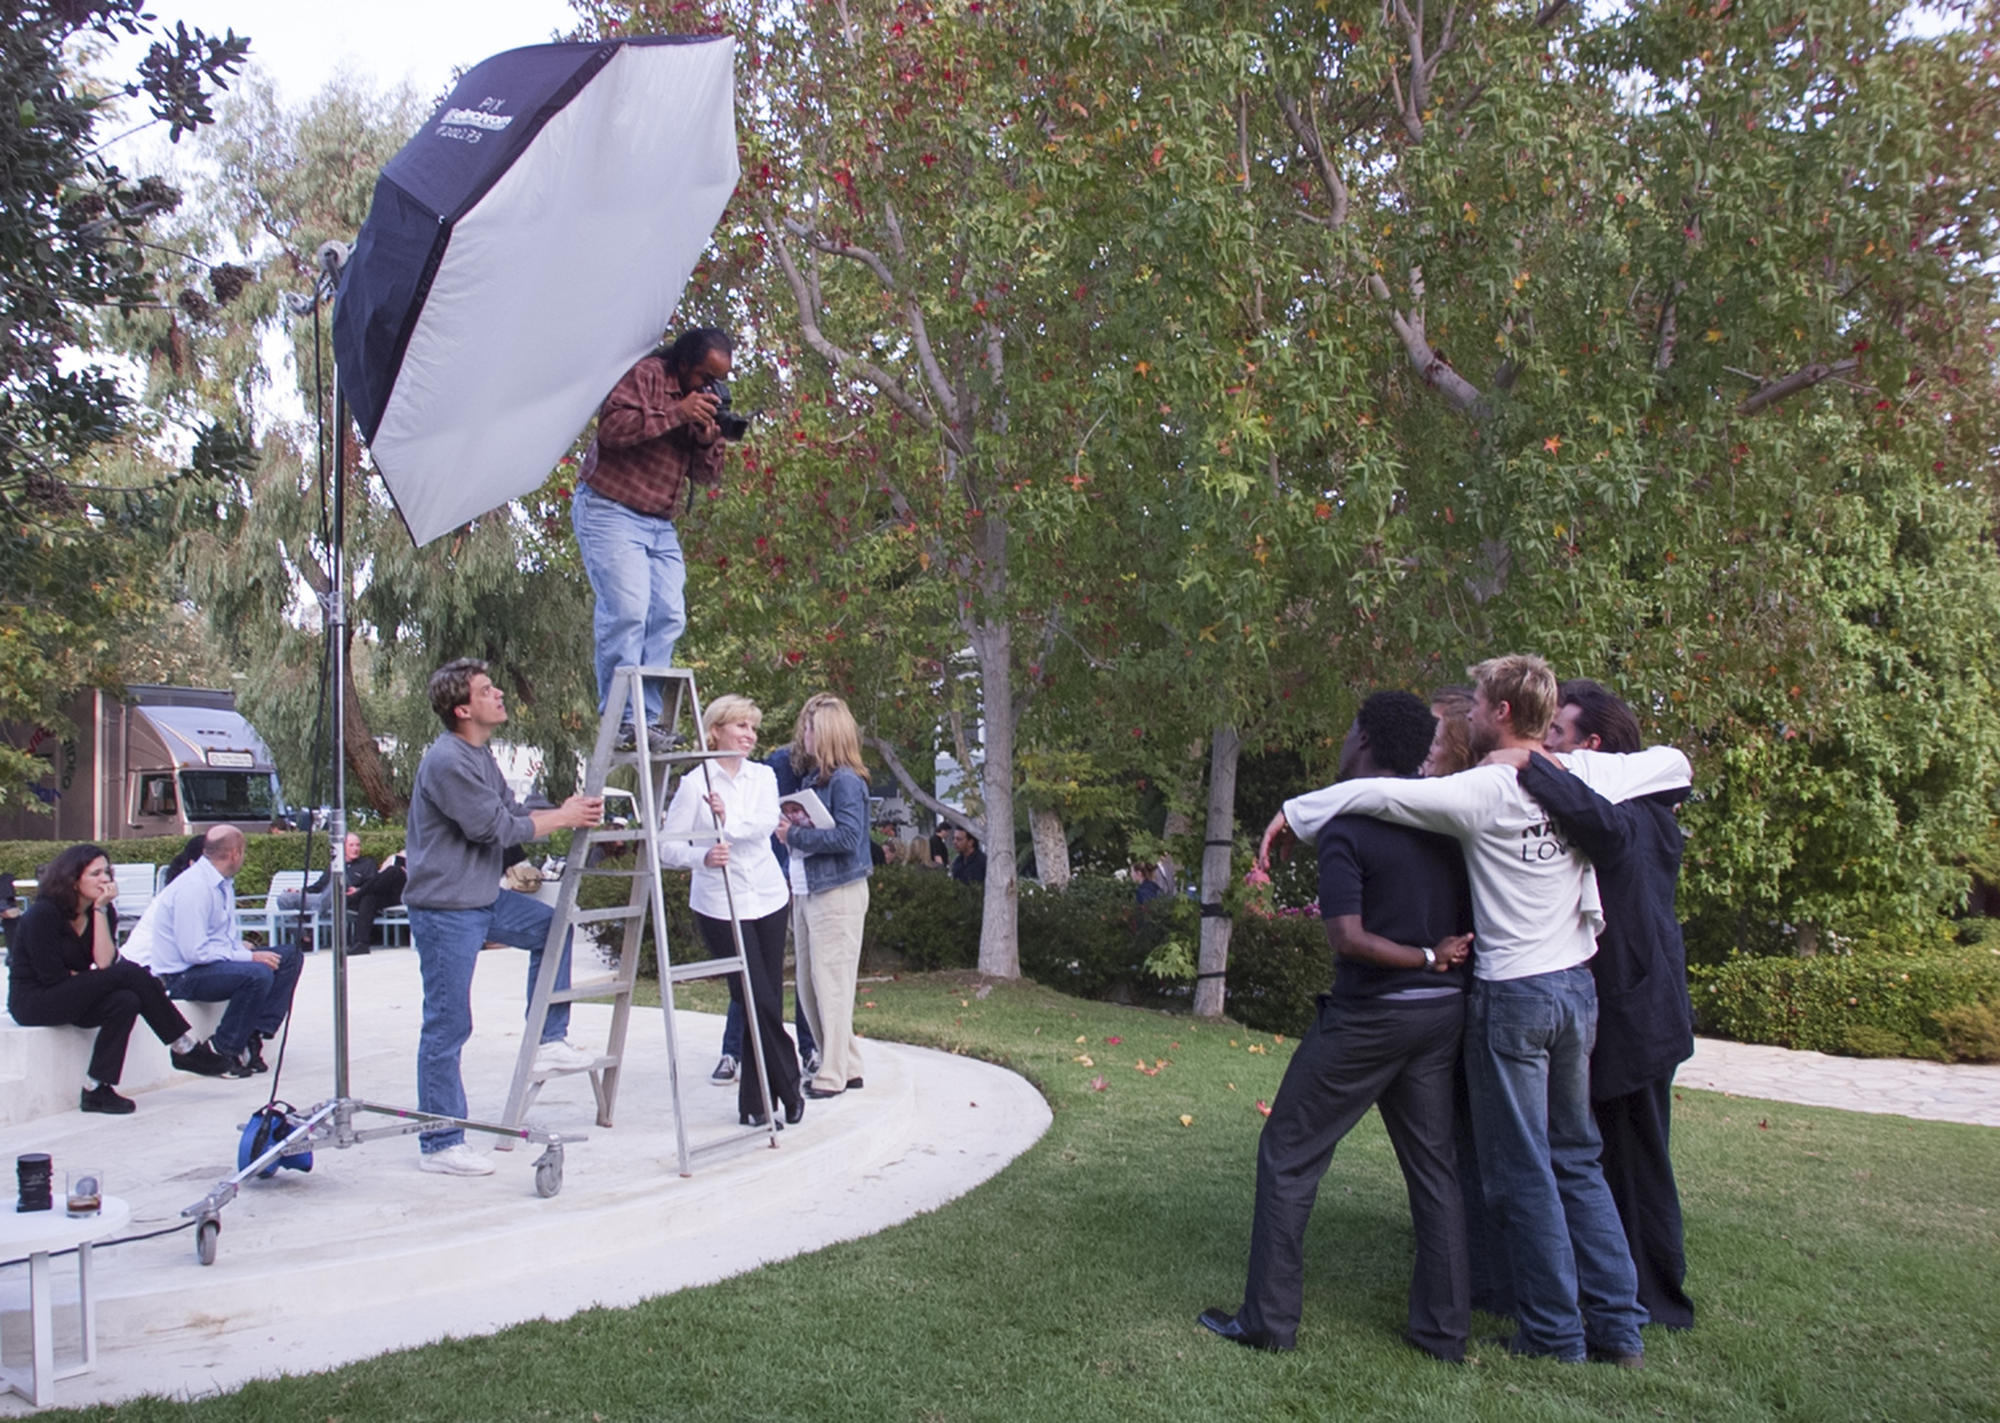 Anacleto Rapping stands atop a ladder during a portrait shoot for